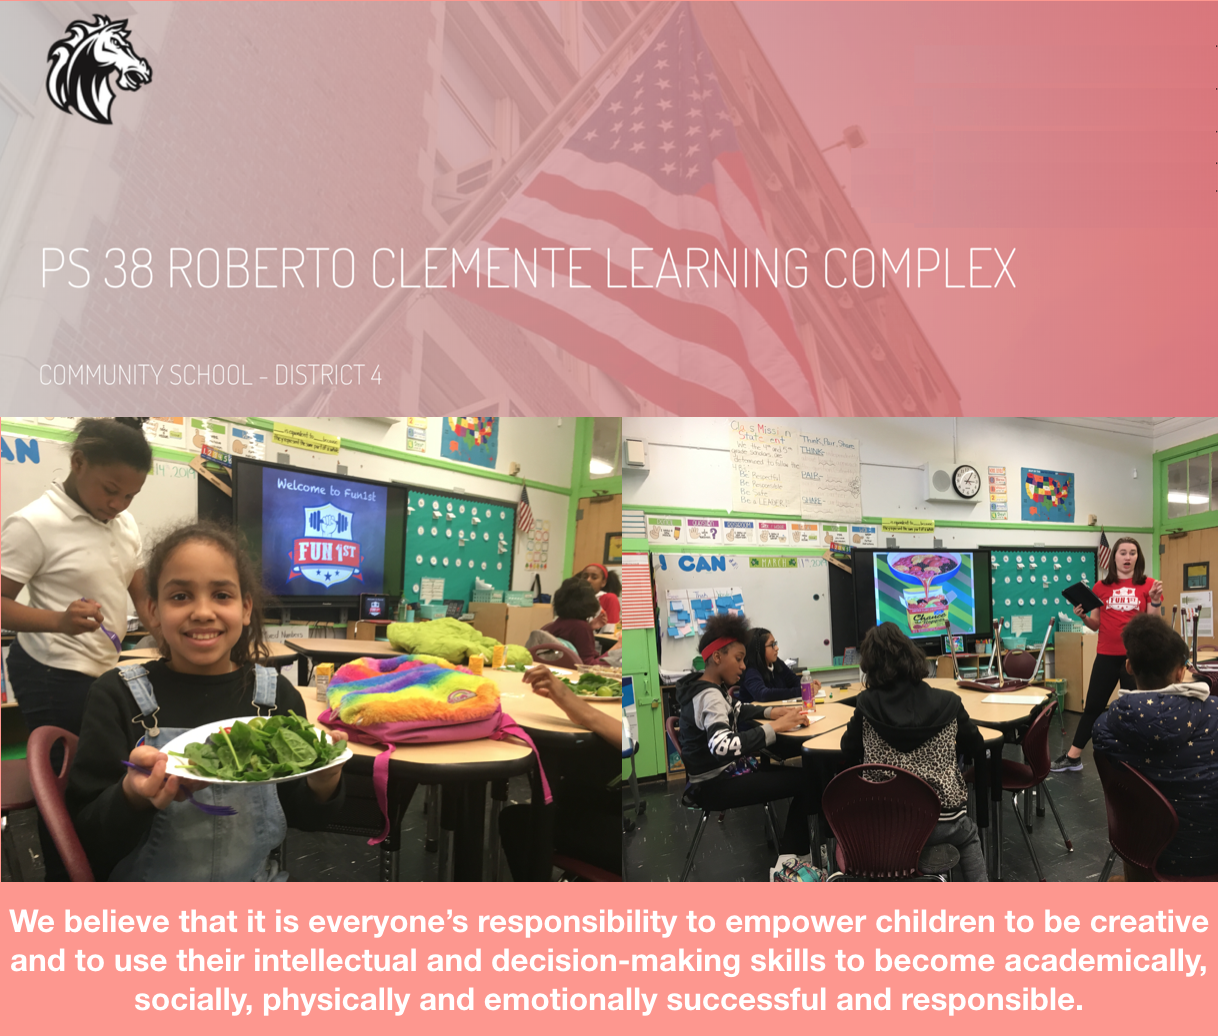 Thank you PS 38 Roberto Clemente for Taking The Fun1st Challenge Spring-2019   - This year Partnerships with Children, a community based organization, will also be partnering with us to support PS 38 teachers, scholars and their families. Partnership with Children's goal, much like ours, is to strengthen the emotional, social, and cognitive skills of all scholars so that they may be successful in school, society, and life.